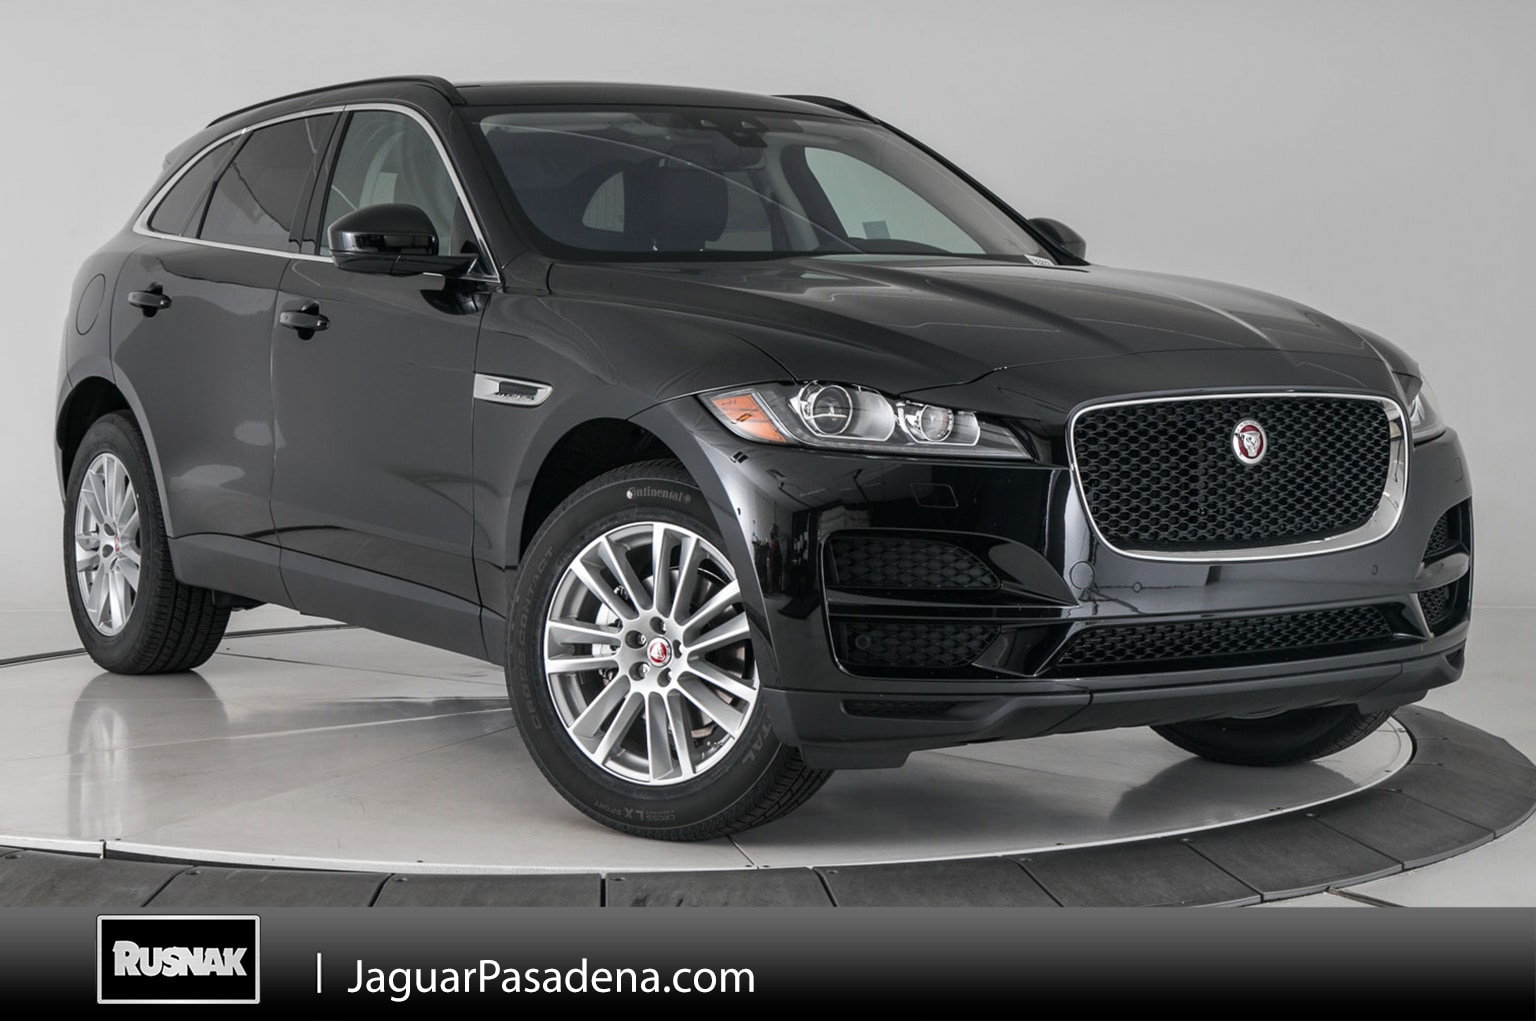 buy or lease new 2018 jaguar f pace los angeles stock 780277. Black Bedroom Furniture Sets. Home Design Ideas